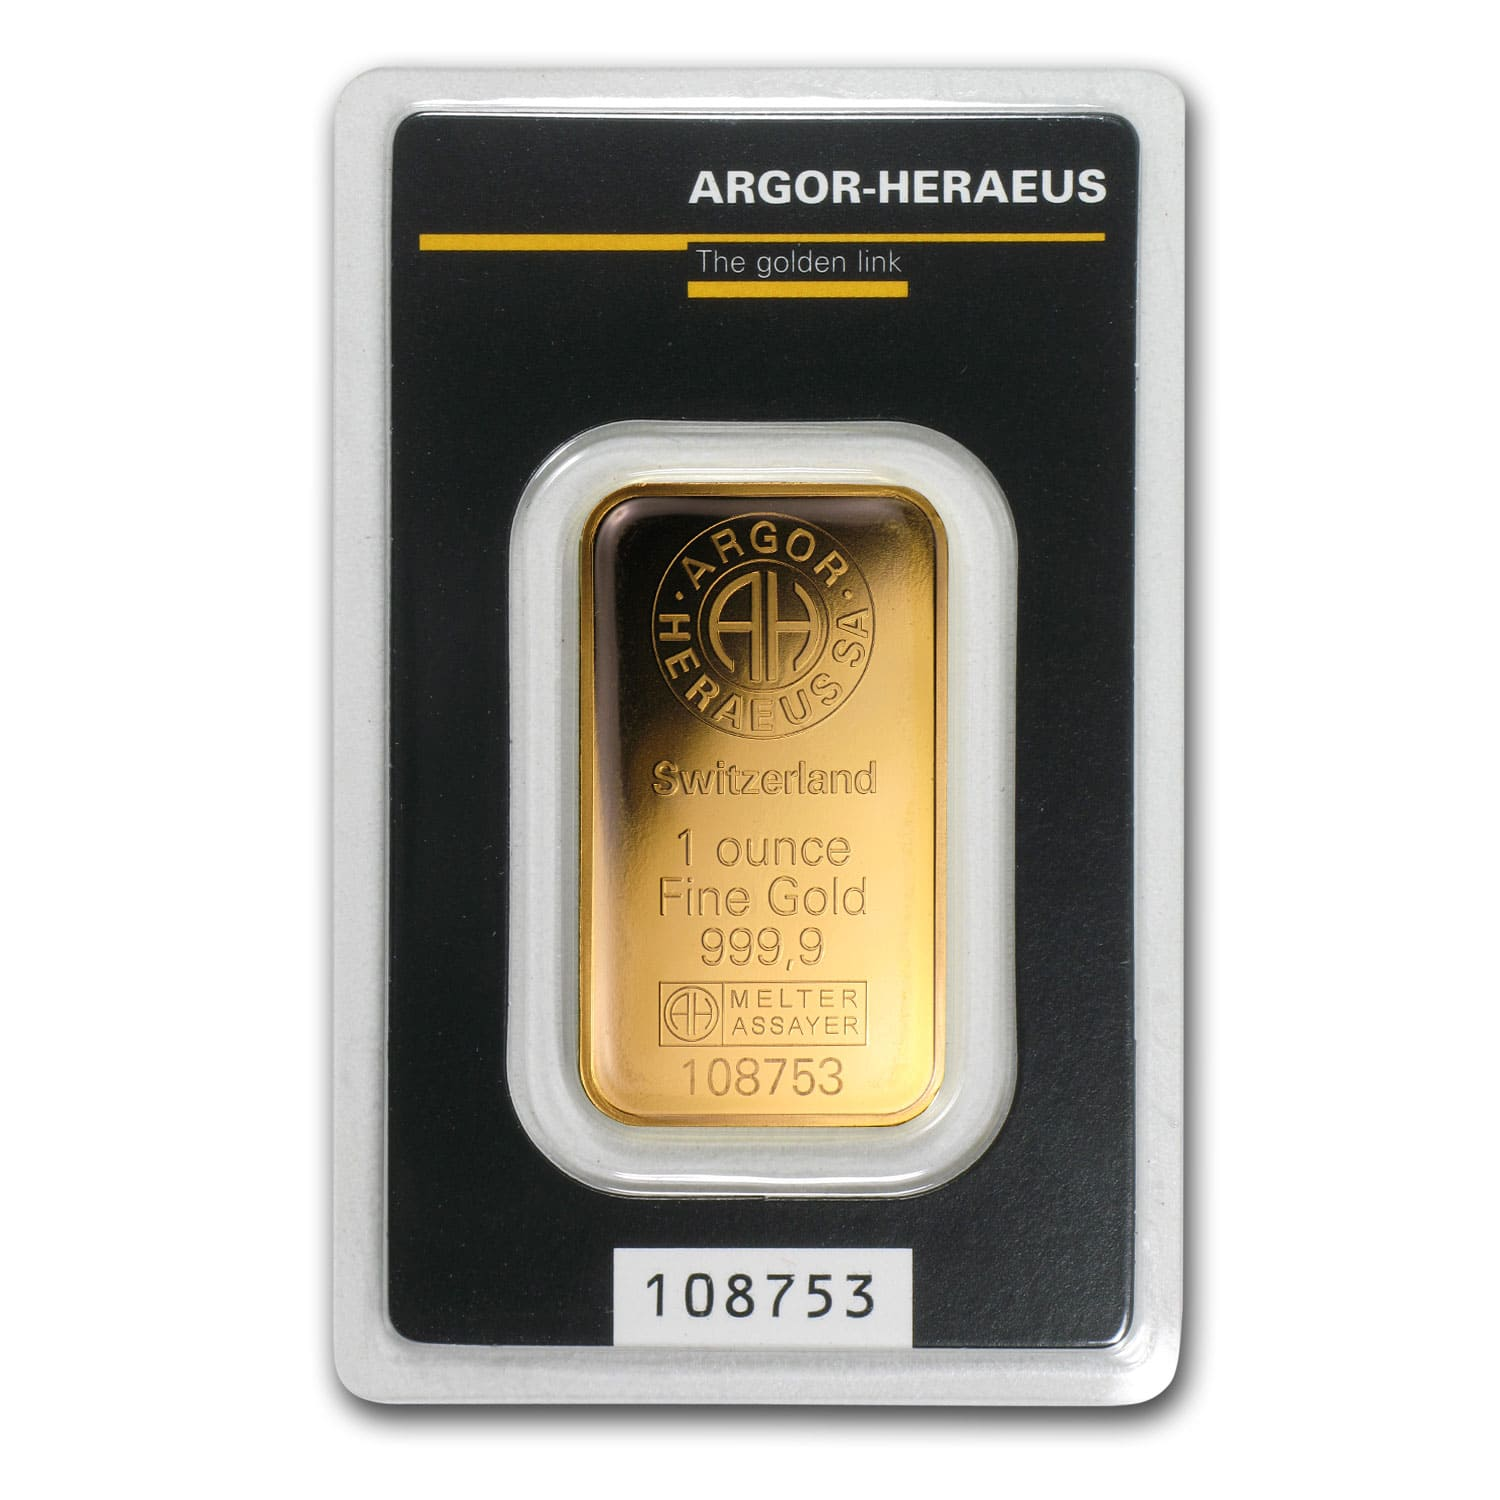 1 oz Gold Bar - Argor-Heraeus KineBar Design (In Assay)